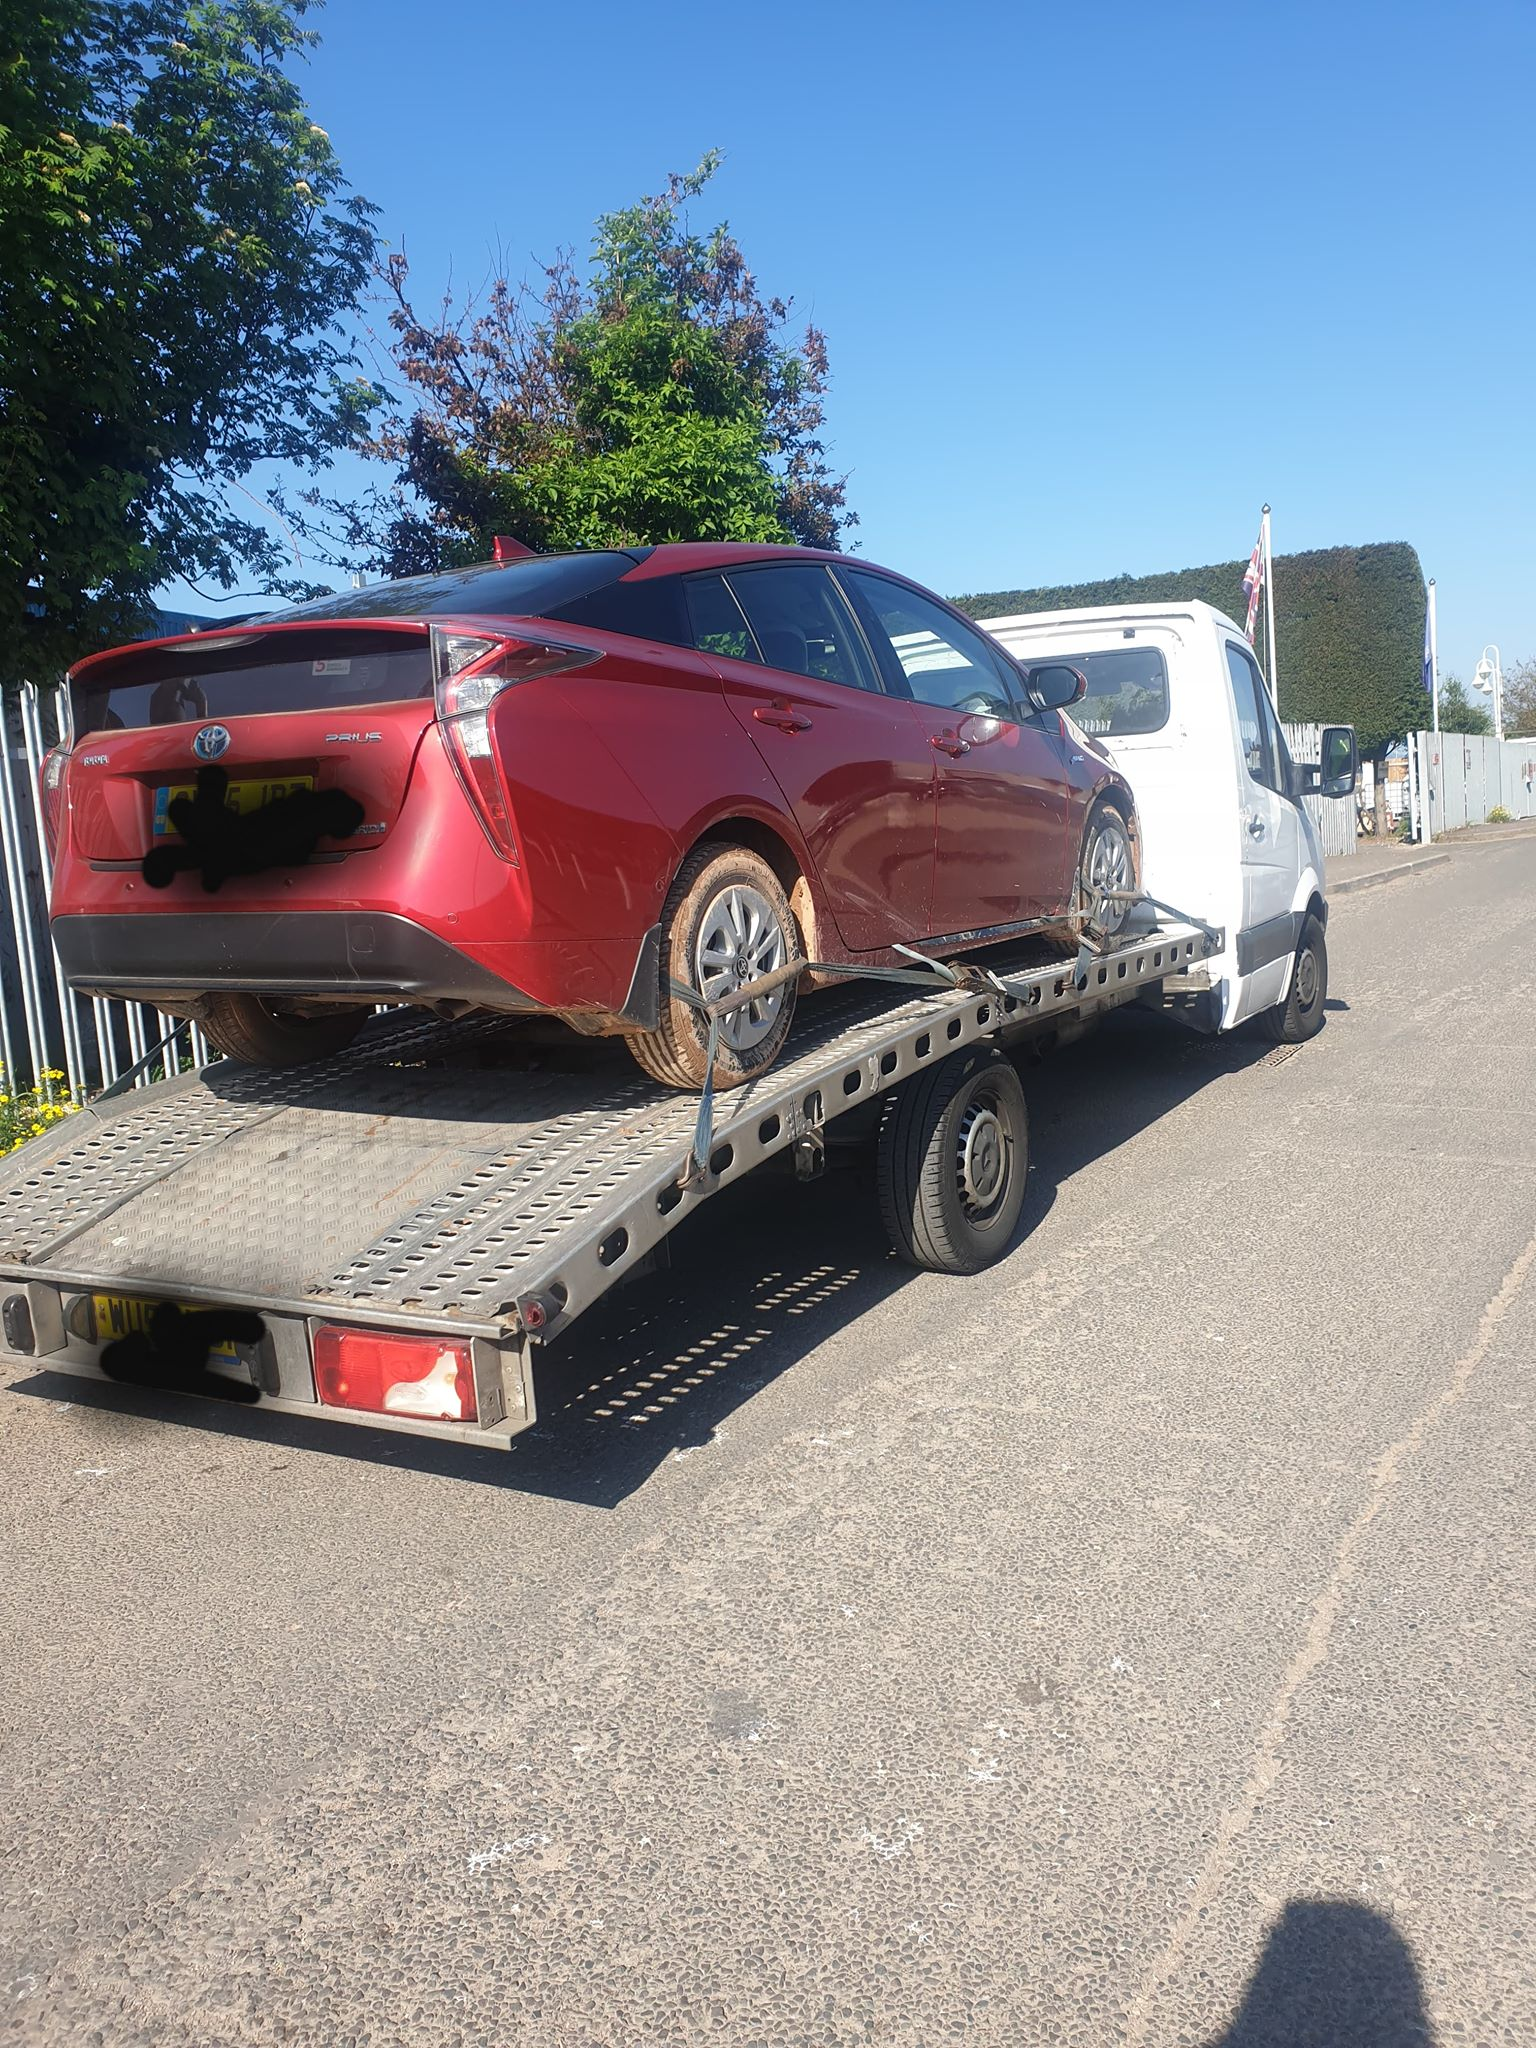 Car Breakdown Recovery and Towing Service